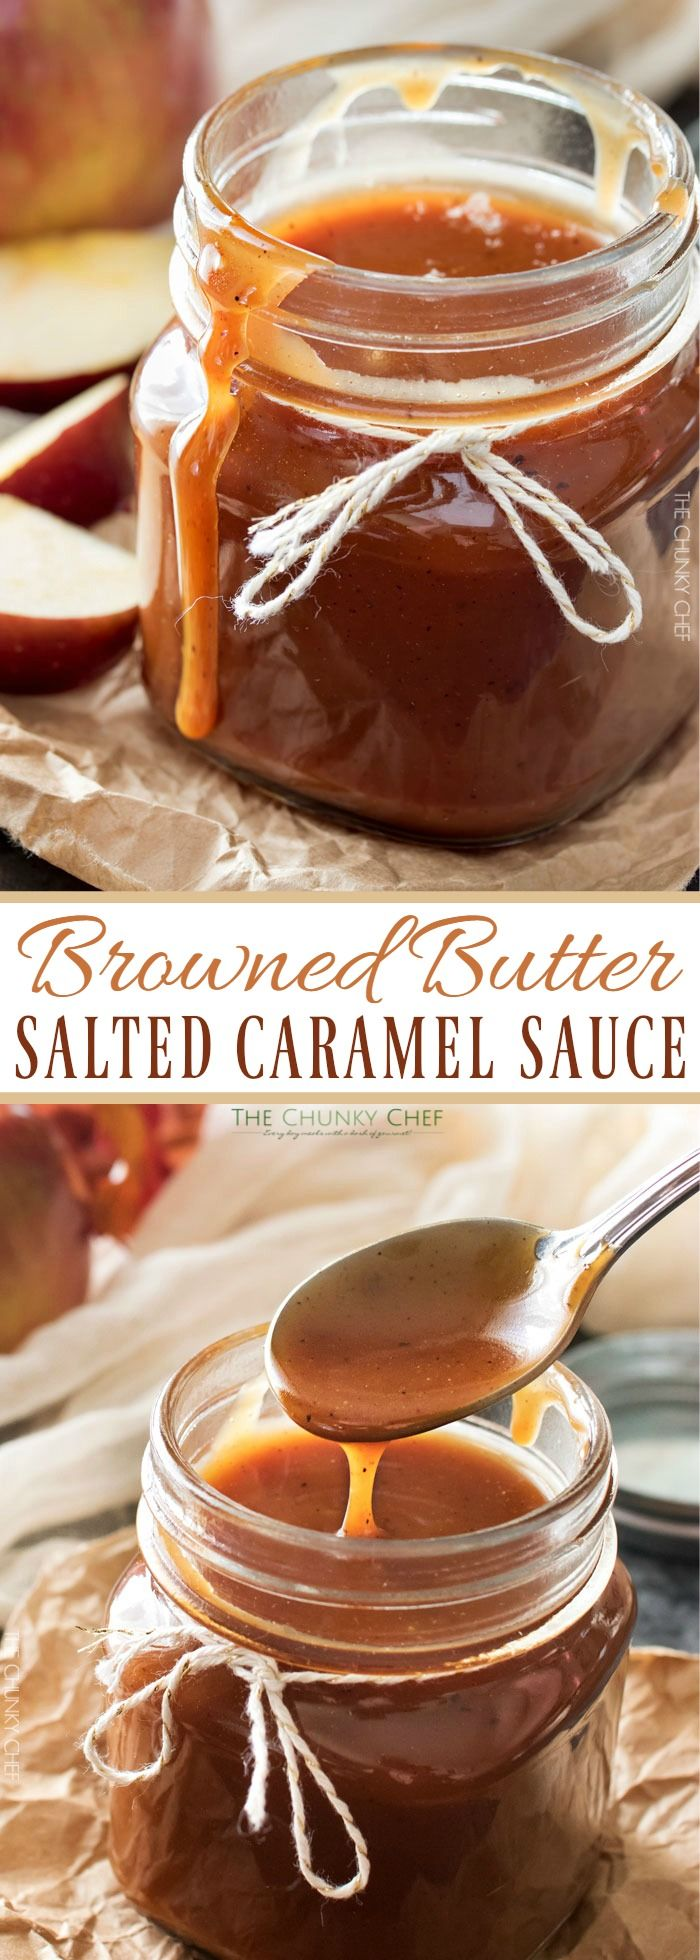 Browned Butter Salted Caramel Sauce   Browned butter gives this homemade salted…